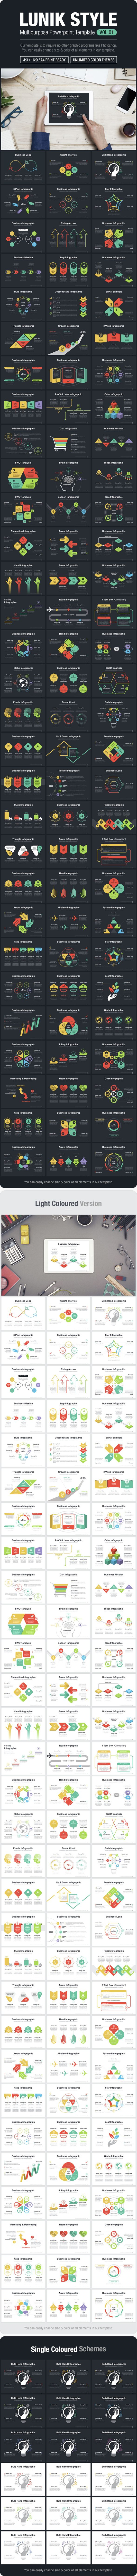 Lunik Style - Multipurpose PowerPoint Template. Download here: http://graphicriver.net/item/lunik-style-multipurpose-powerpoint-template/15295061?ref=ksioks